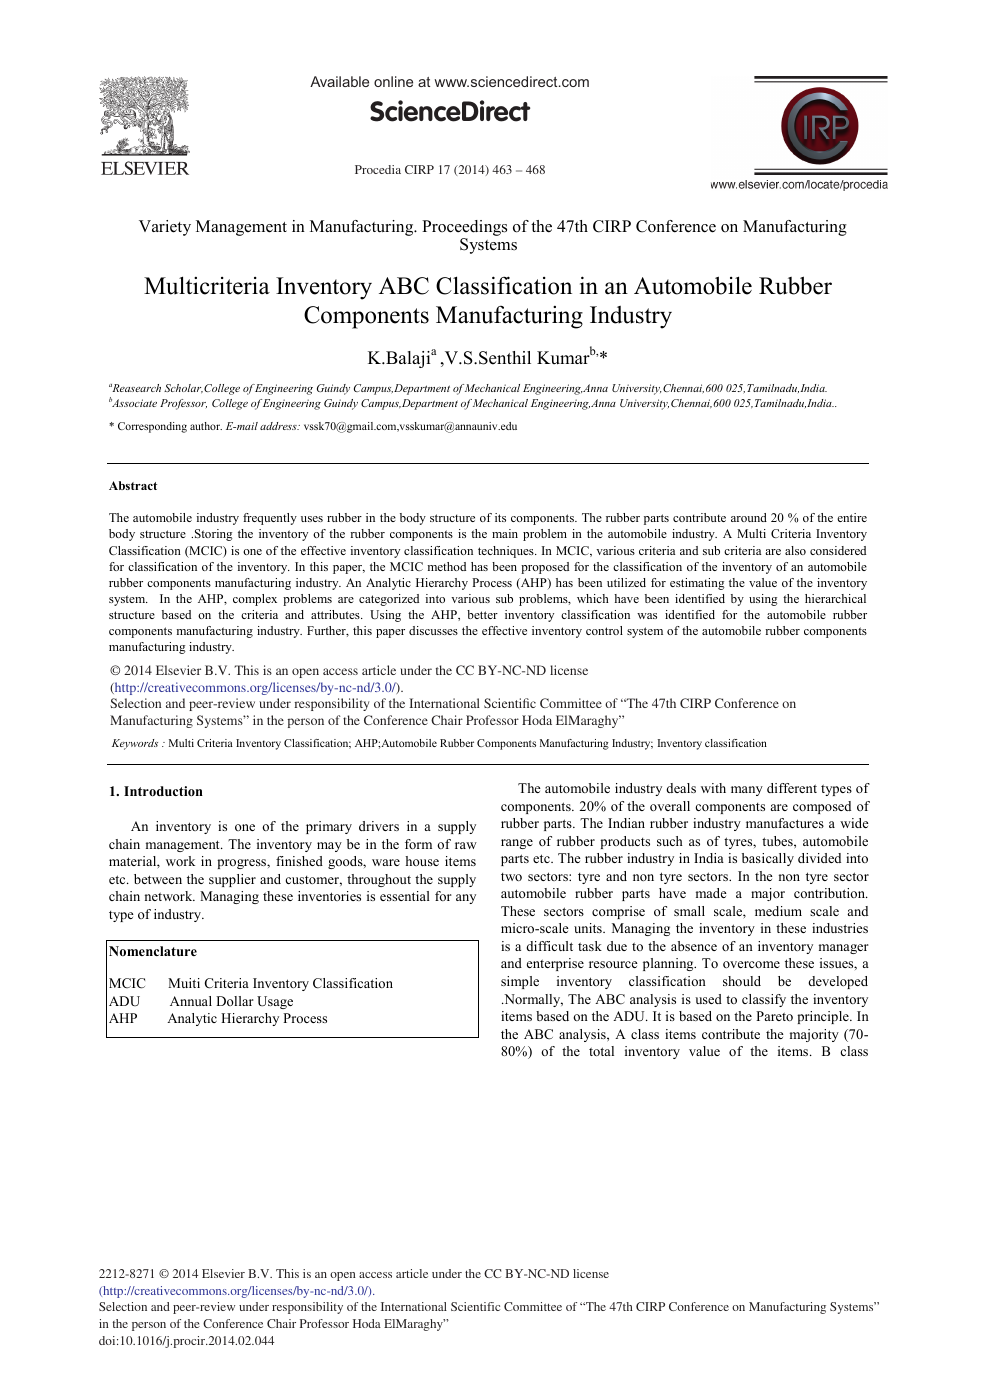 Multicriteria Inventory ABC Classification in an Automobile Rubber